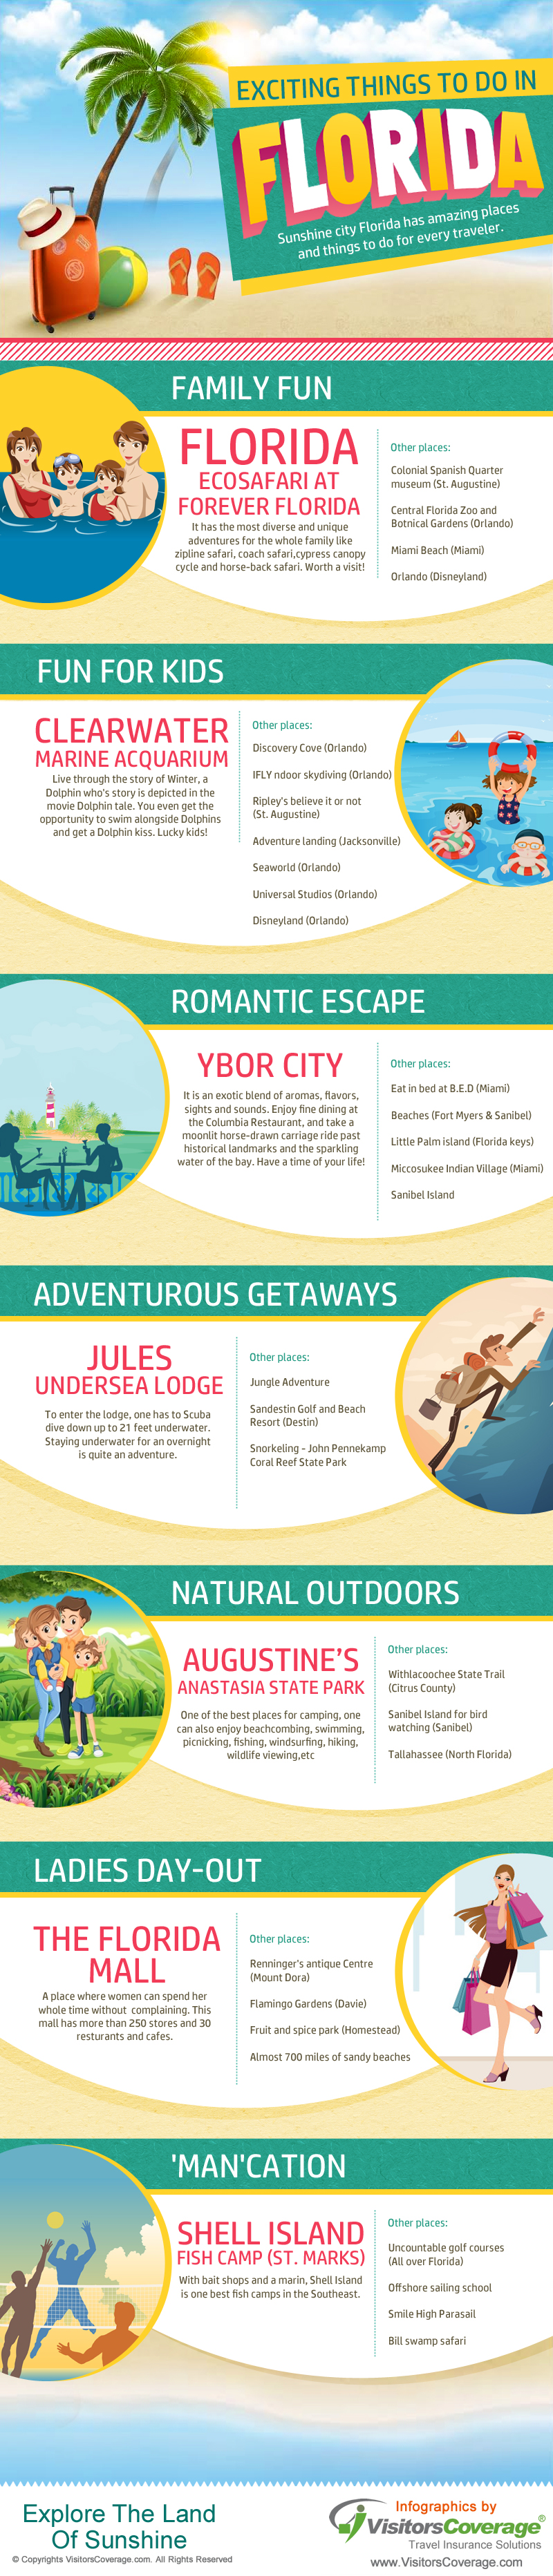 Exciting Things To Do In Florida - Do you fancy an infographic? There are a lot of them online, but if you want your own please visit http://www.linfografico.com/prezzi/ Online girano molte infografiche, se ne vuoi realizzare una tutta tua visita http://www.linfografico.com/prezzi/